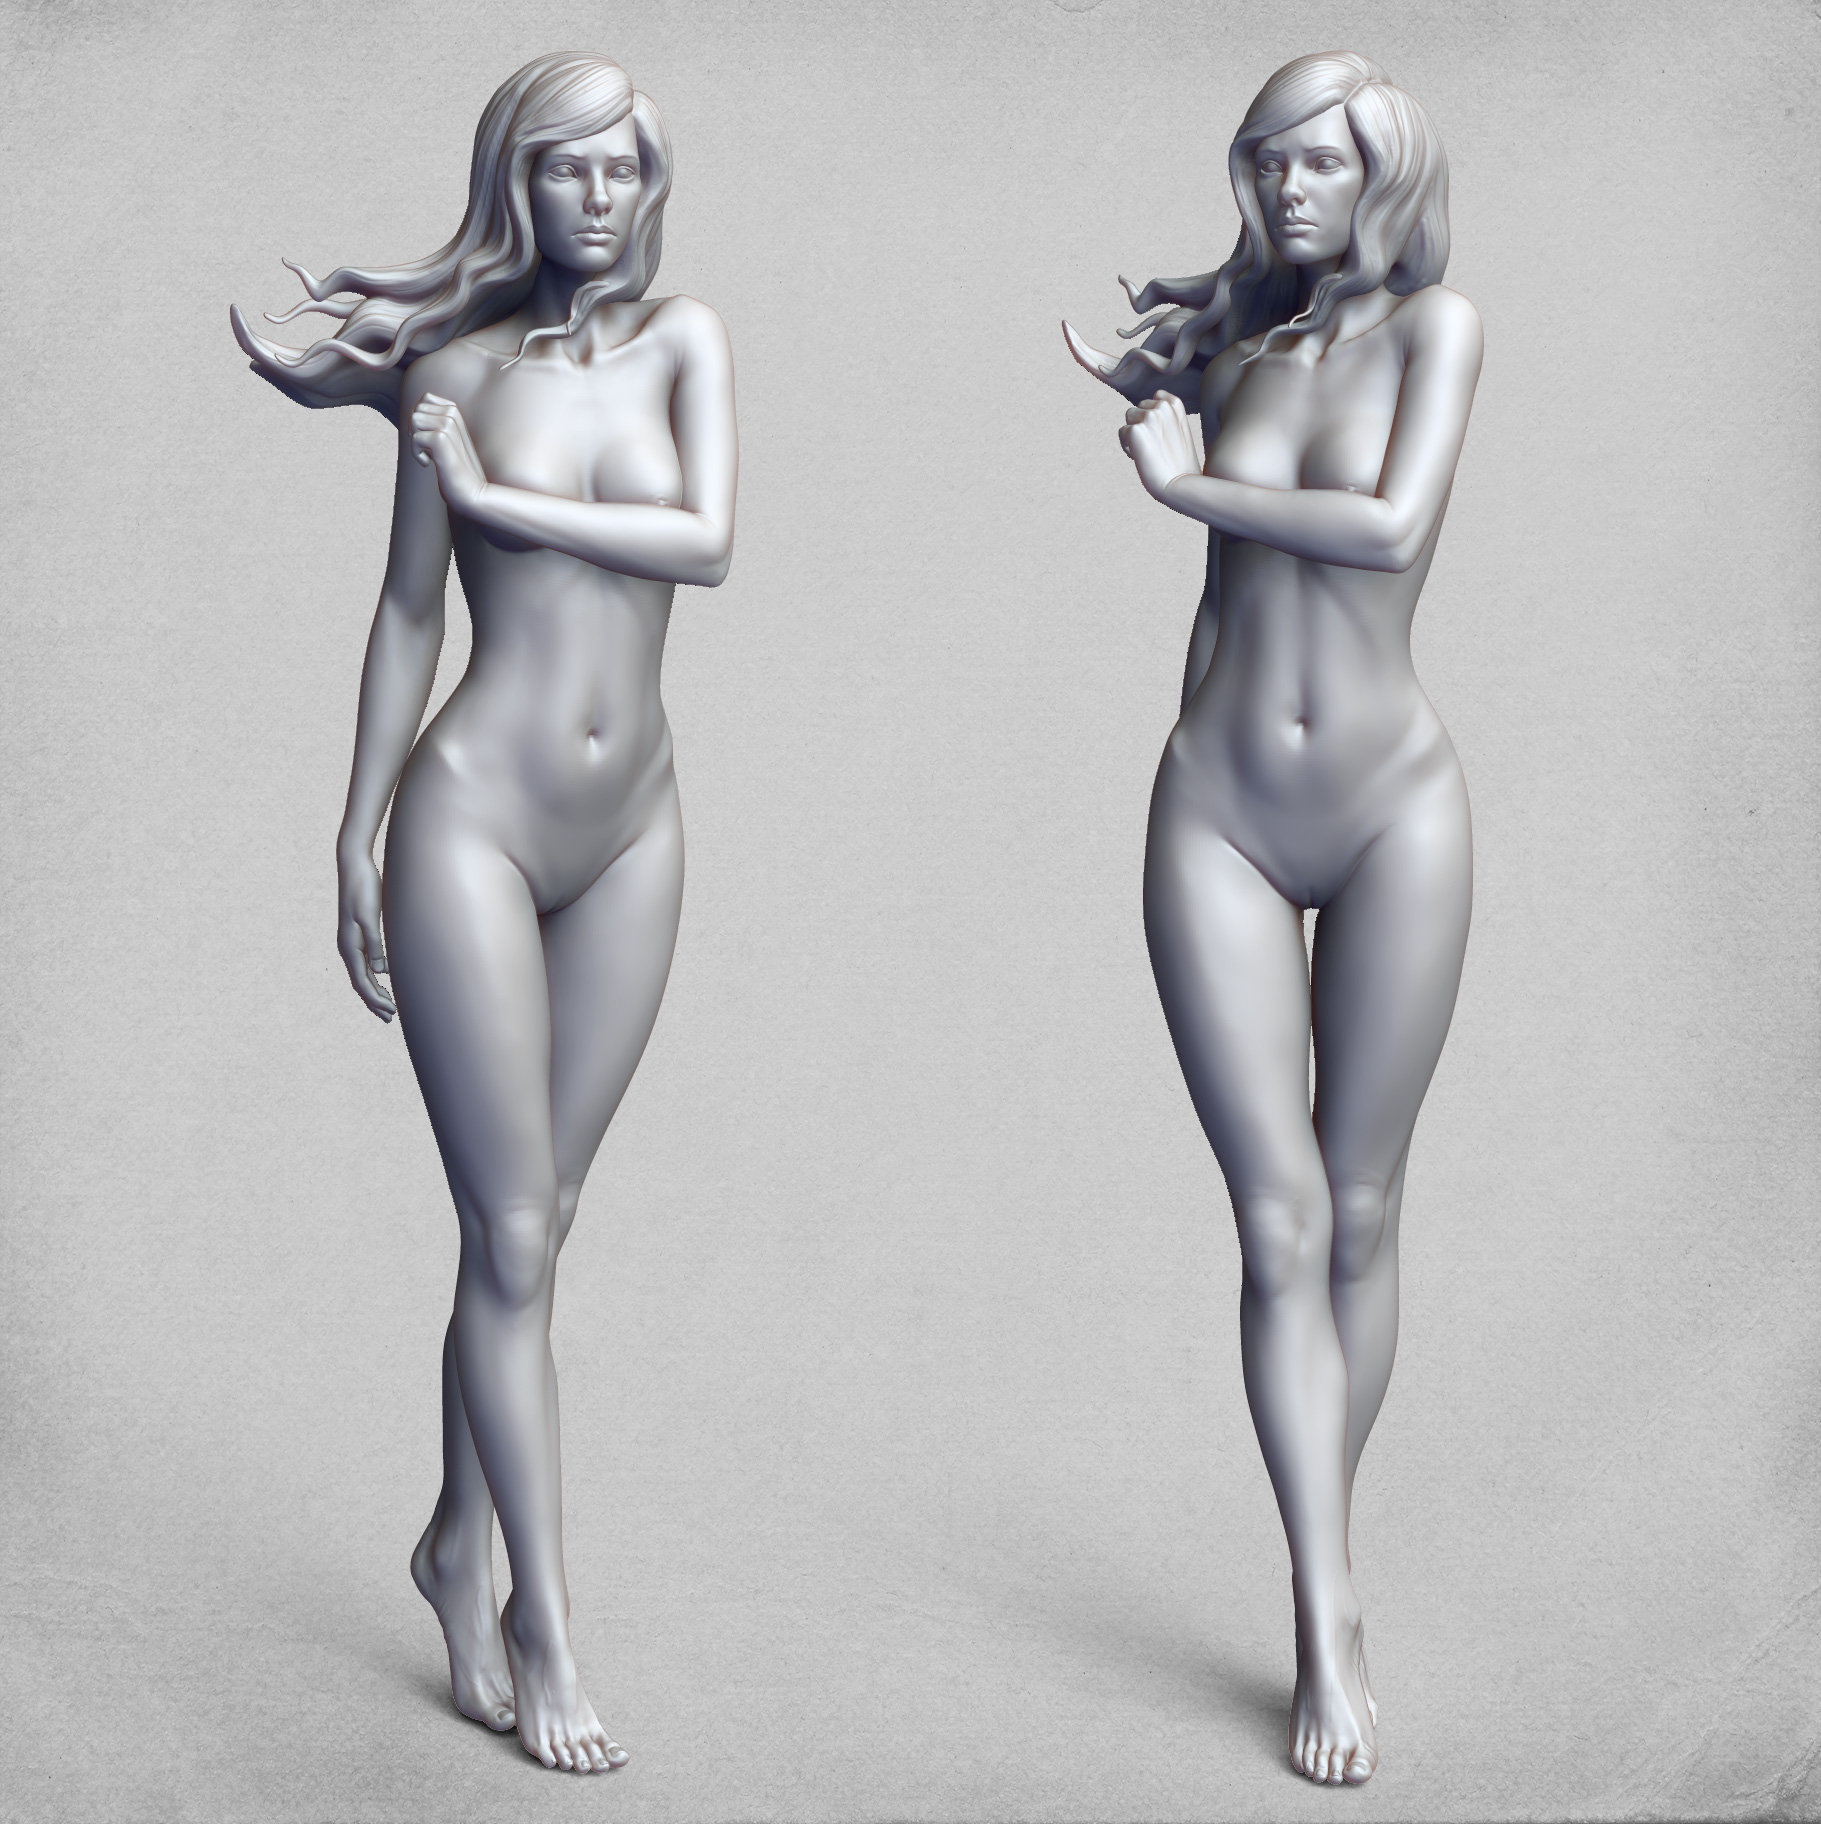 ArtStation - Female Anatomy Study, Stoyan Dimitrov